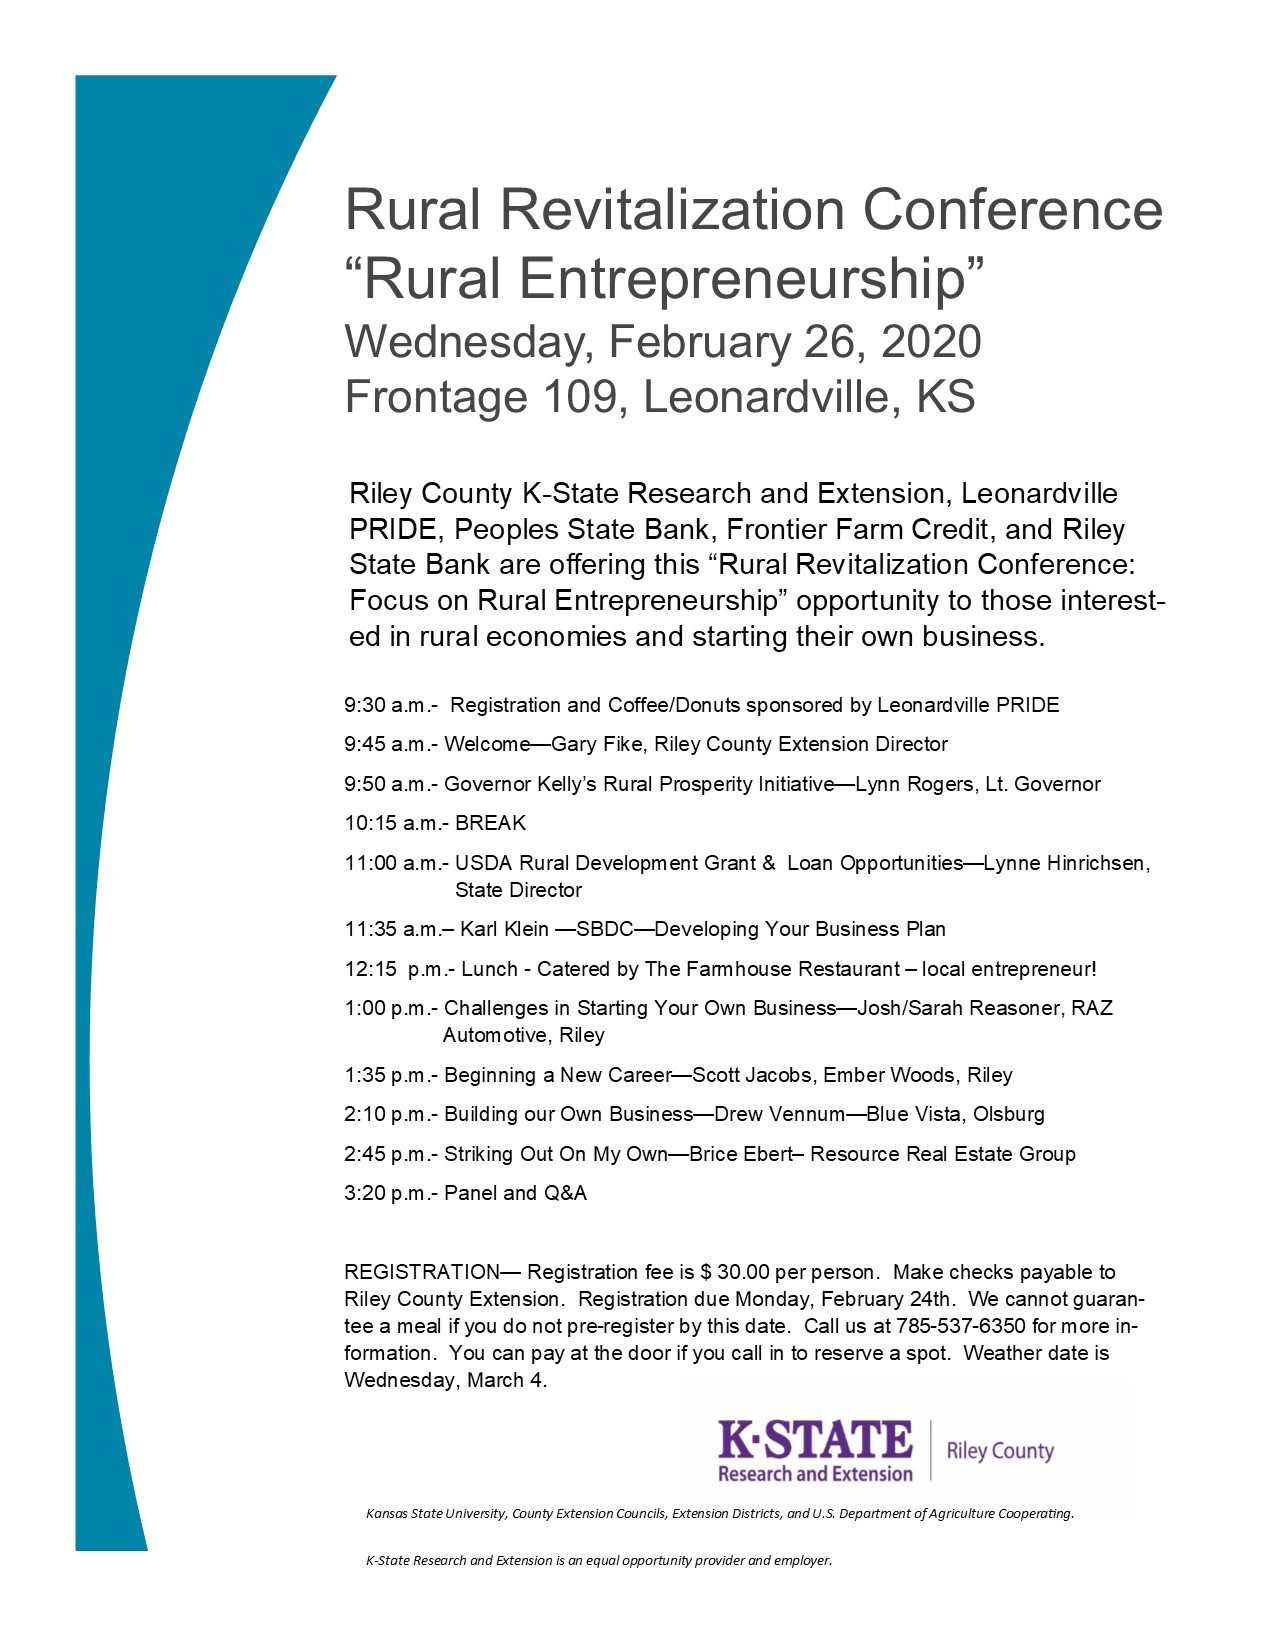 Rural Entrepreneurship Conference - 2-26-20